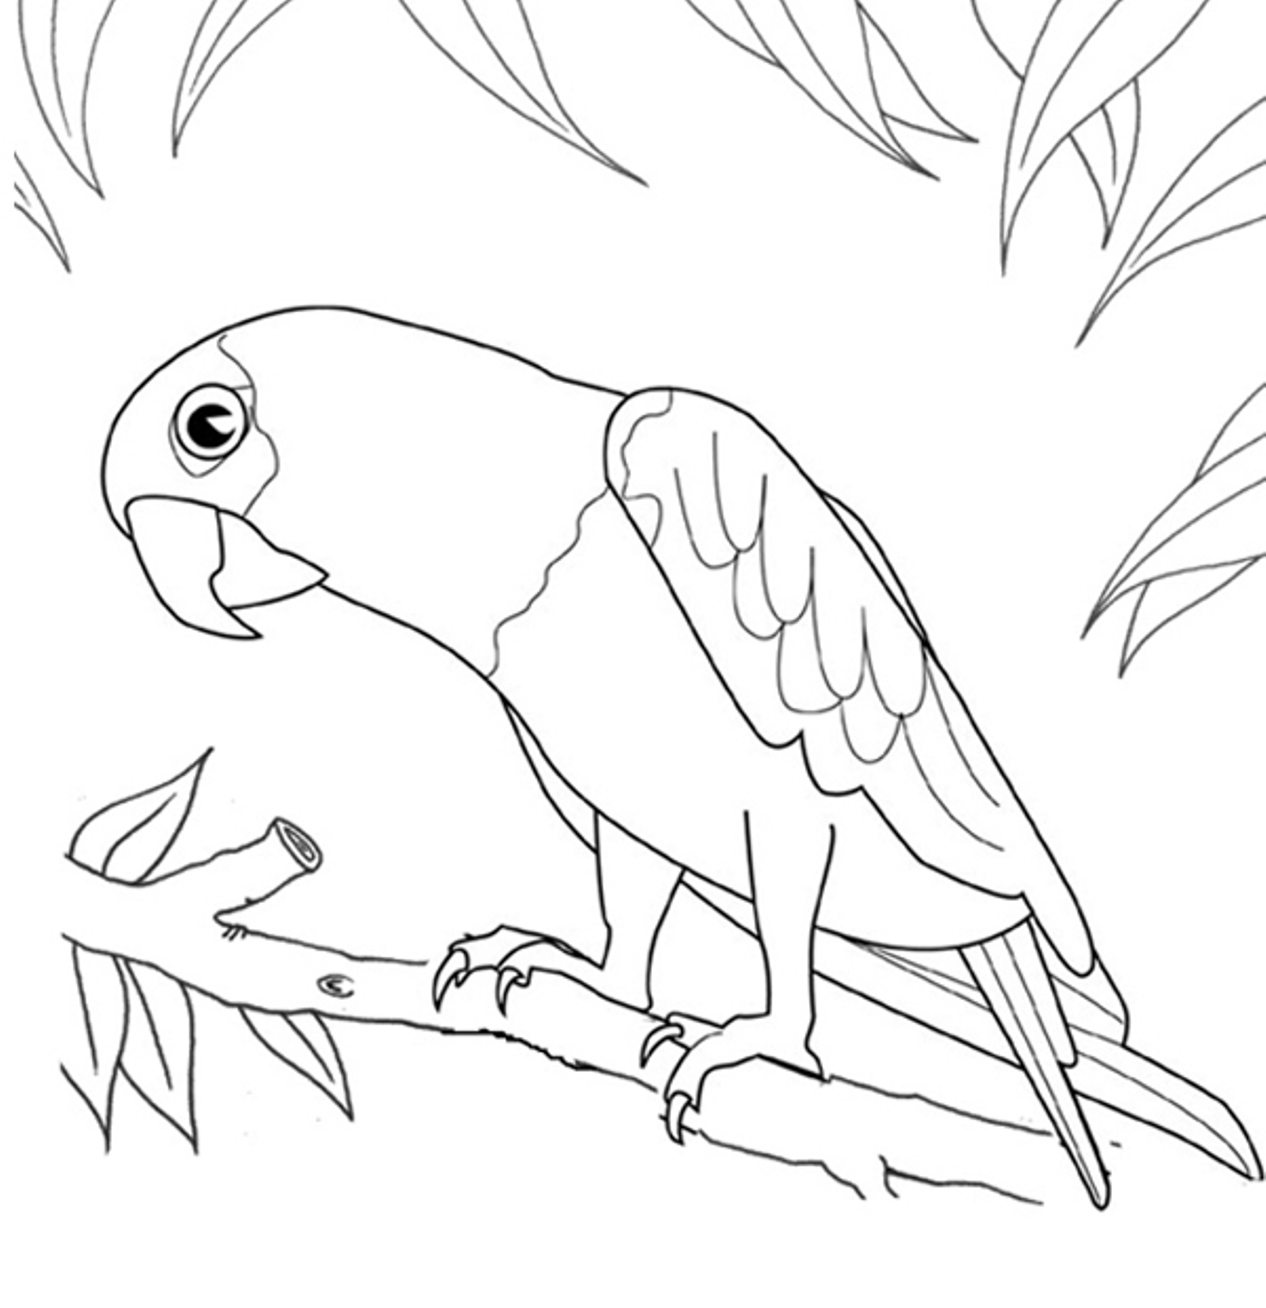 Parrot Drawing Images at GetDrawings.com   Free for personal use ...